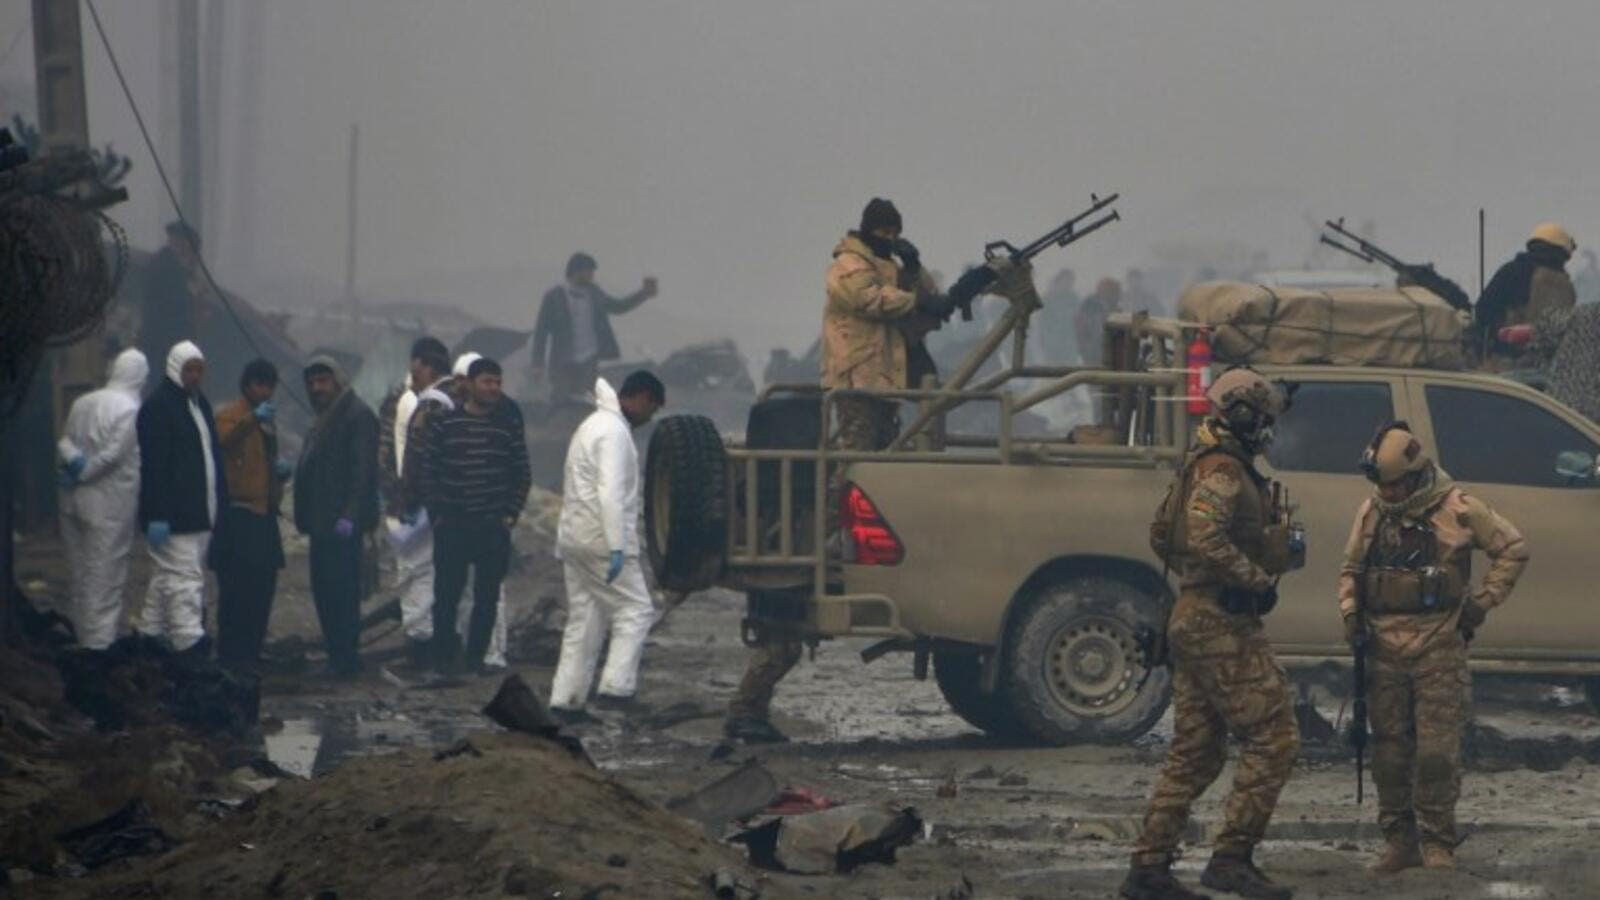 Afghan security forces and investigators gather at the site of a suicide bomb attack outside a British security firm's compound in Kabul, a day after the blast on November 29, 2018. (NOORULLAH SHIRZADA / AFP)